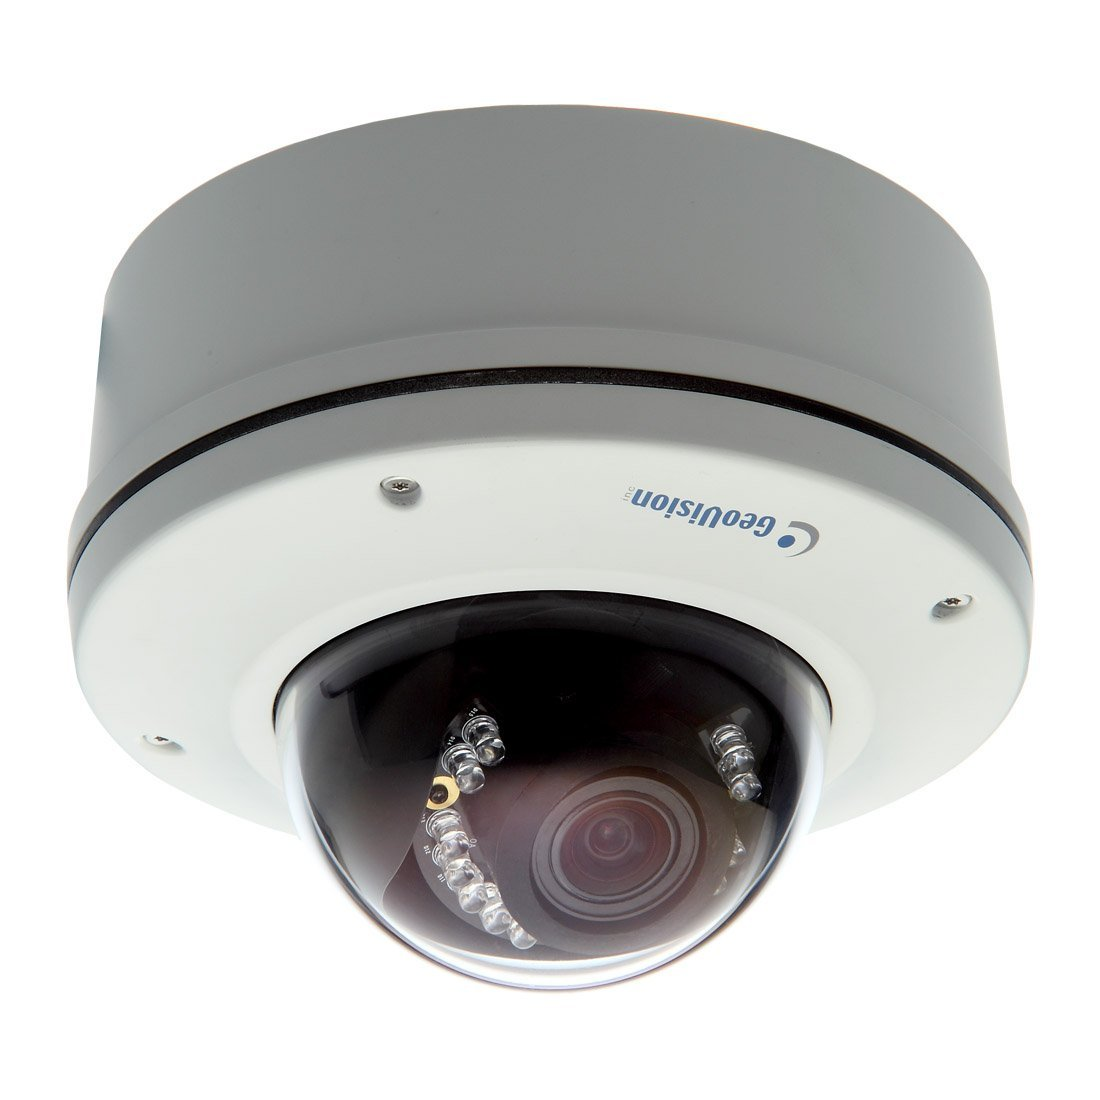 Amazon.com : GeoVision 1.3 Megapixel Network Camera - Color, Monochrome - ?14 GV-VD1500 : Camera & Photo